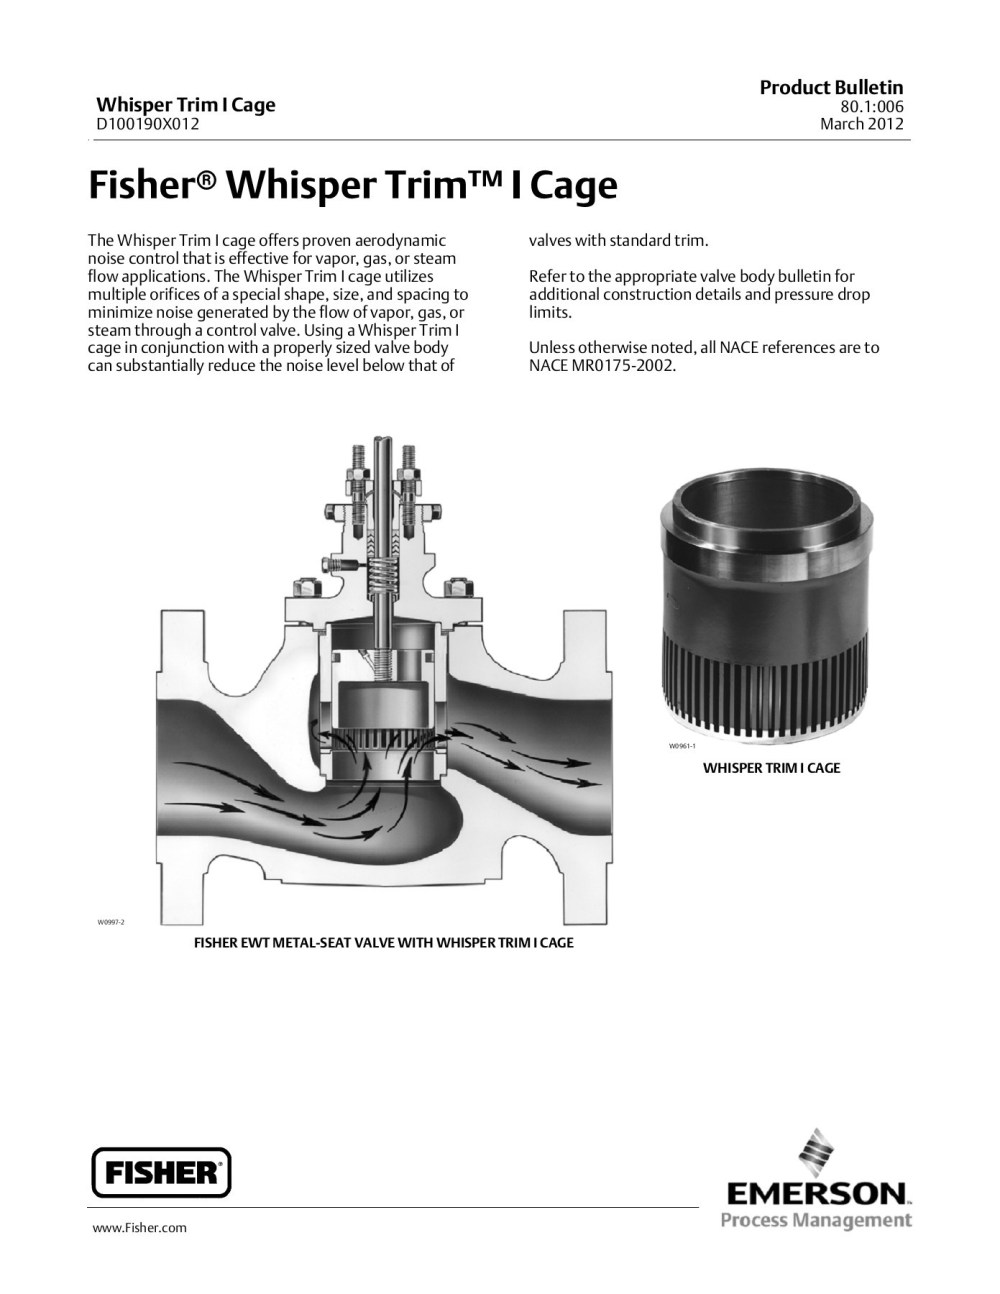 medium resolution of fisherrwhispertrim icage emerson process pages 1 4 text rh fliphtml5 com fisher diagram mammal irvin fisher